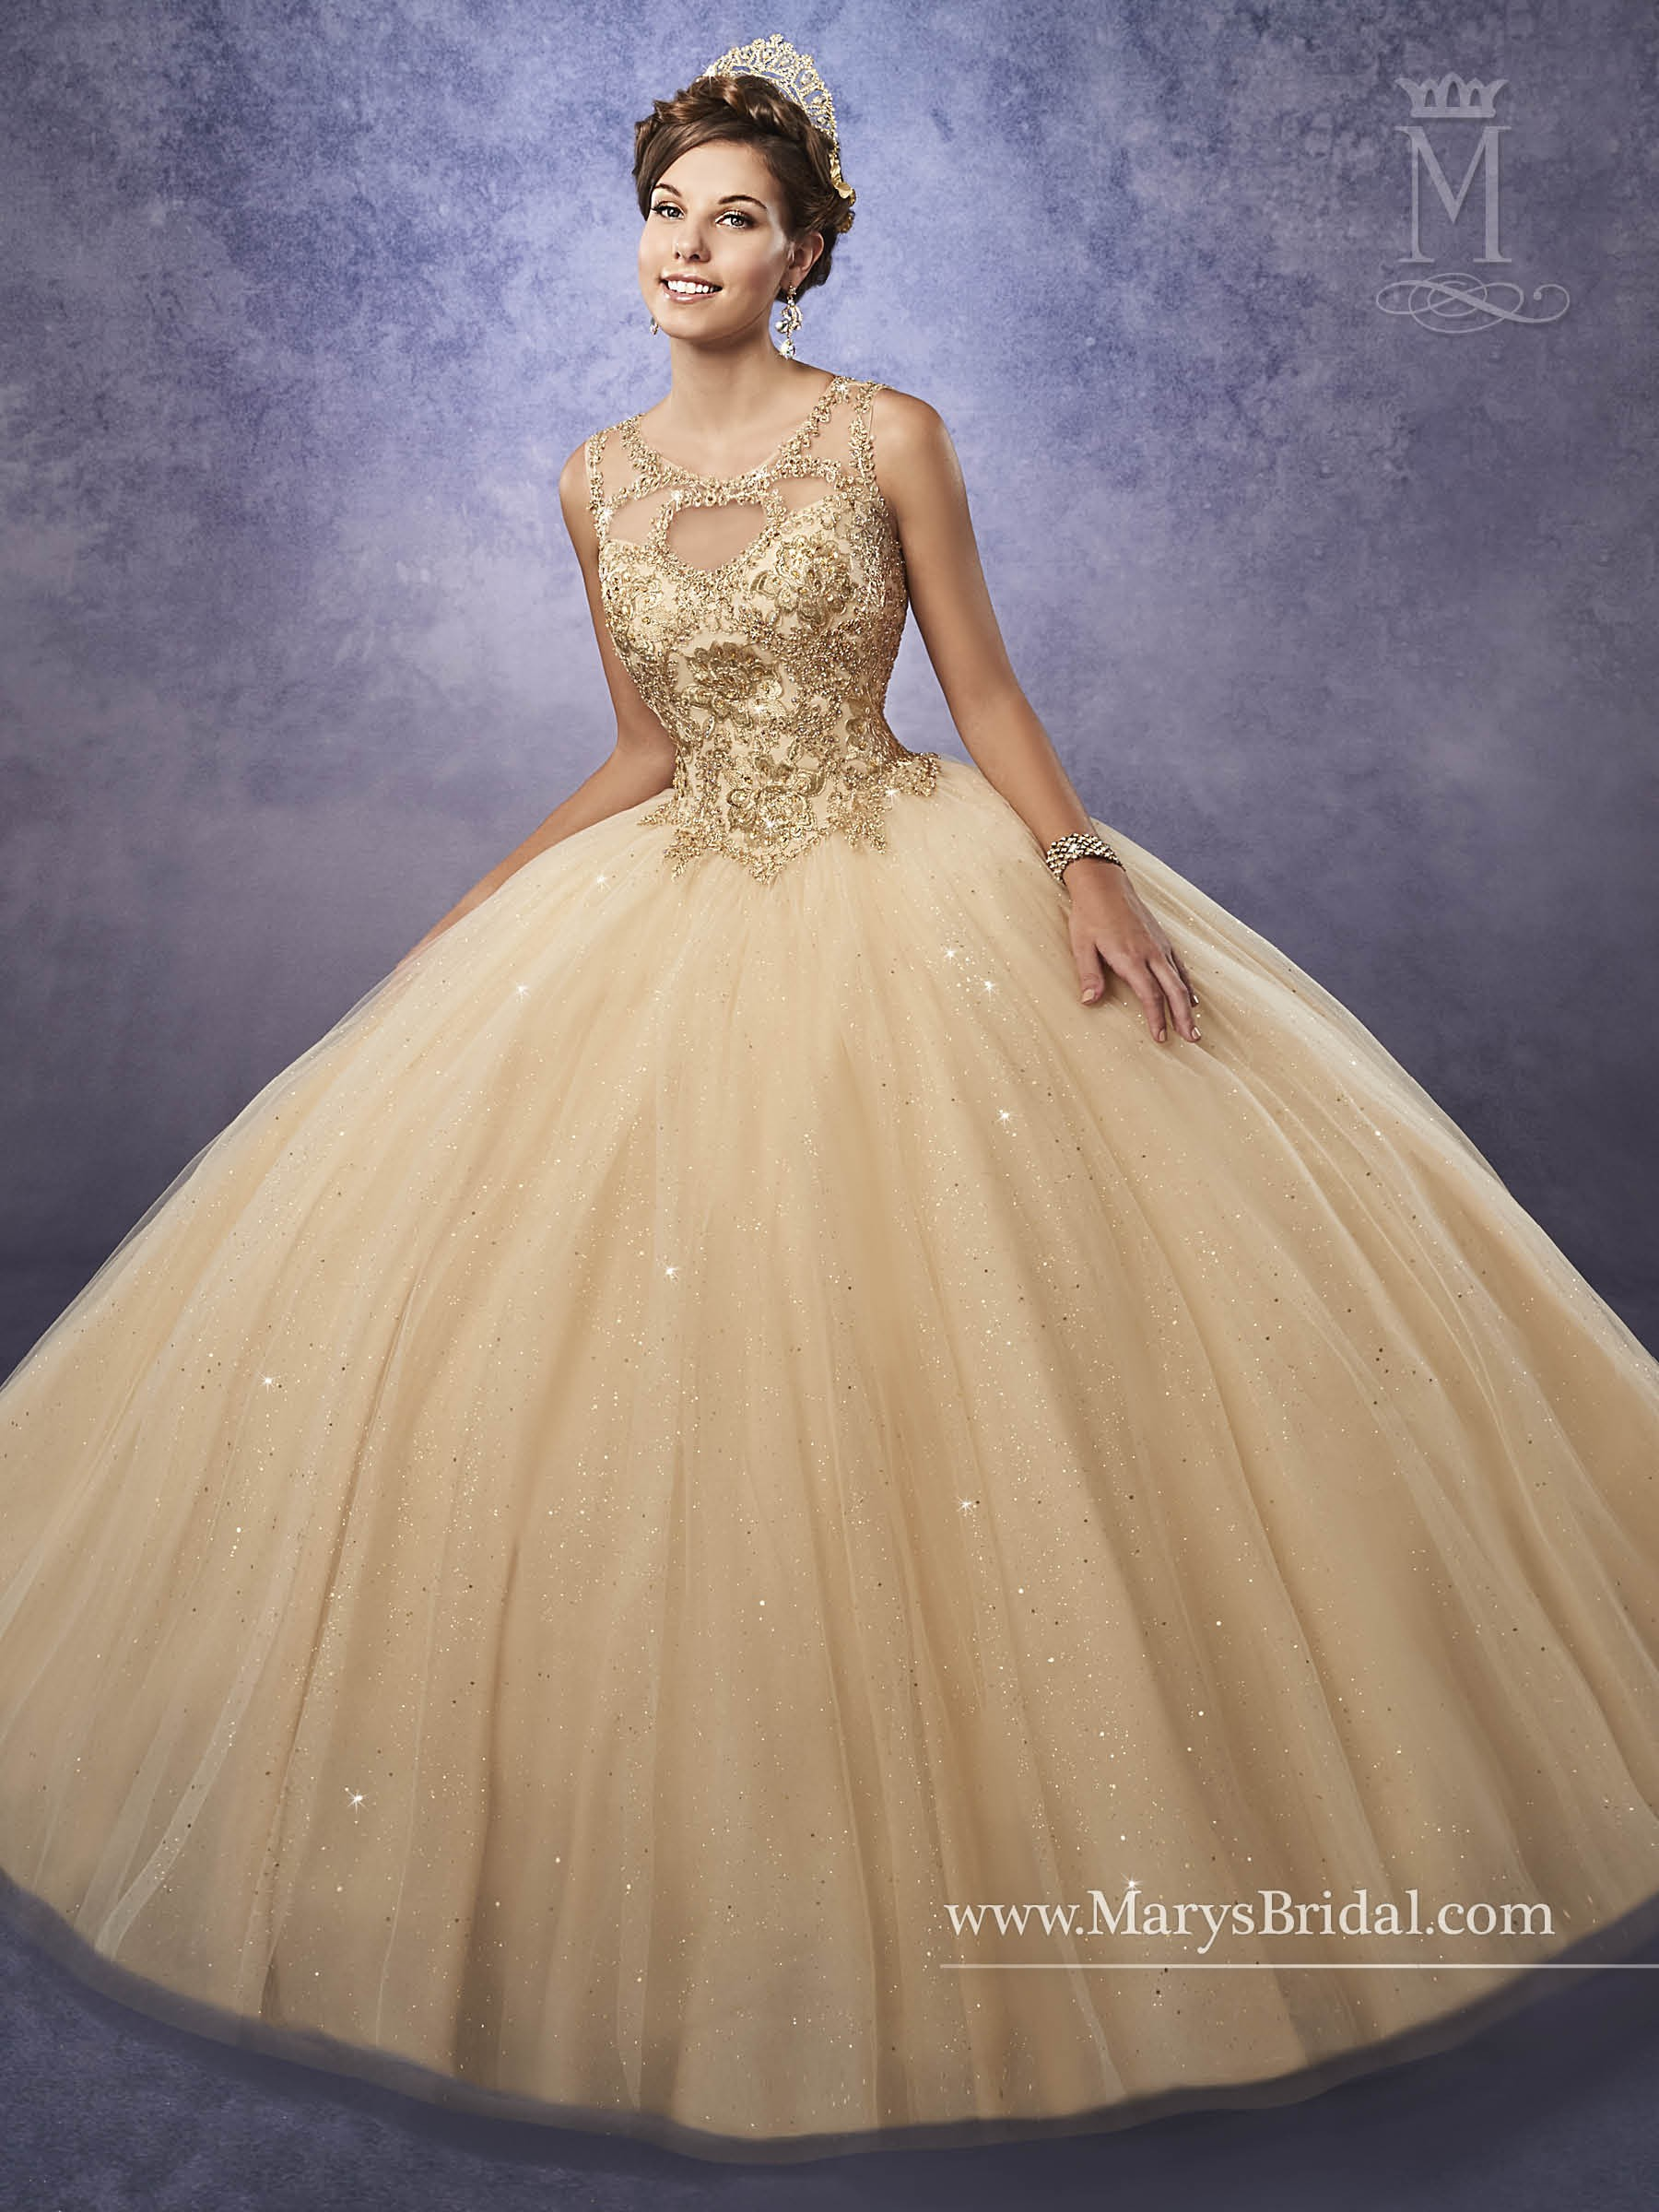 07f5c72cfbe Marys Bridal 4Q496 Quinceanera Dress